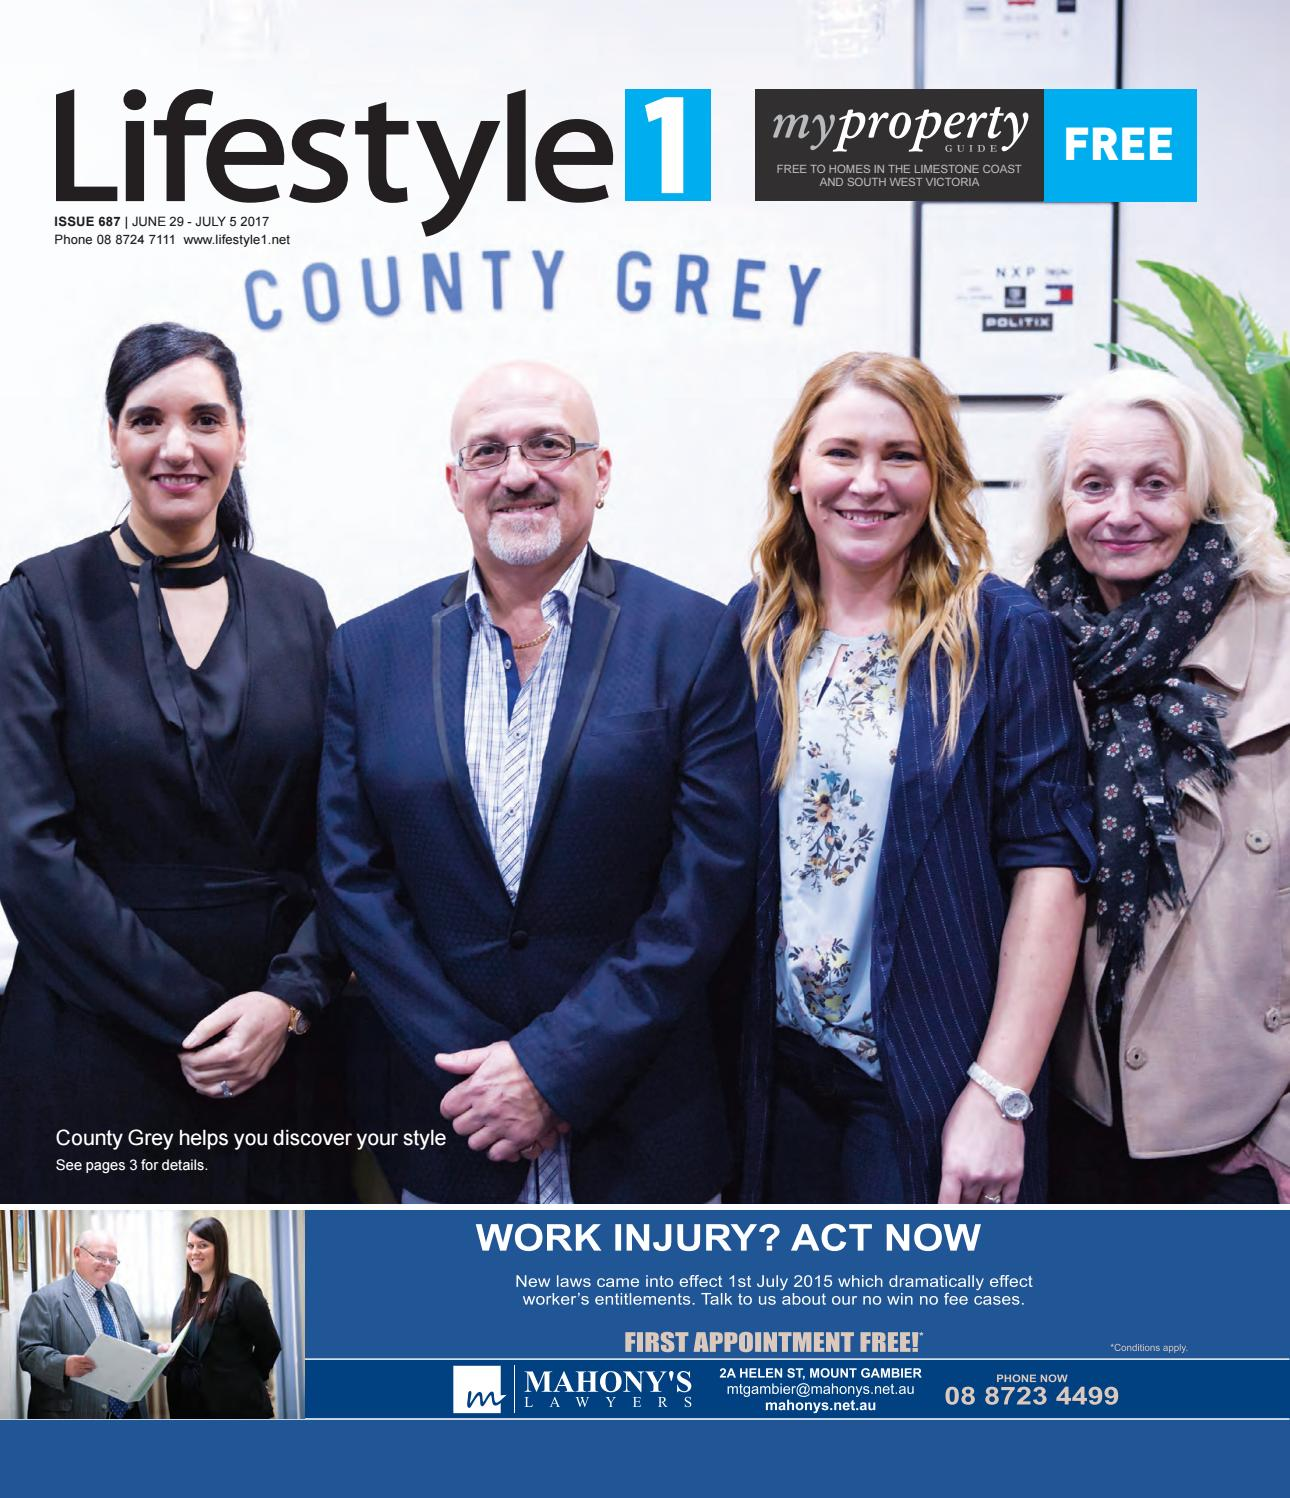 lifestyle 1 issue 687 by lifestyle1 issuu